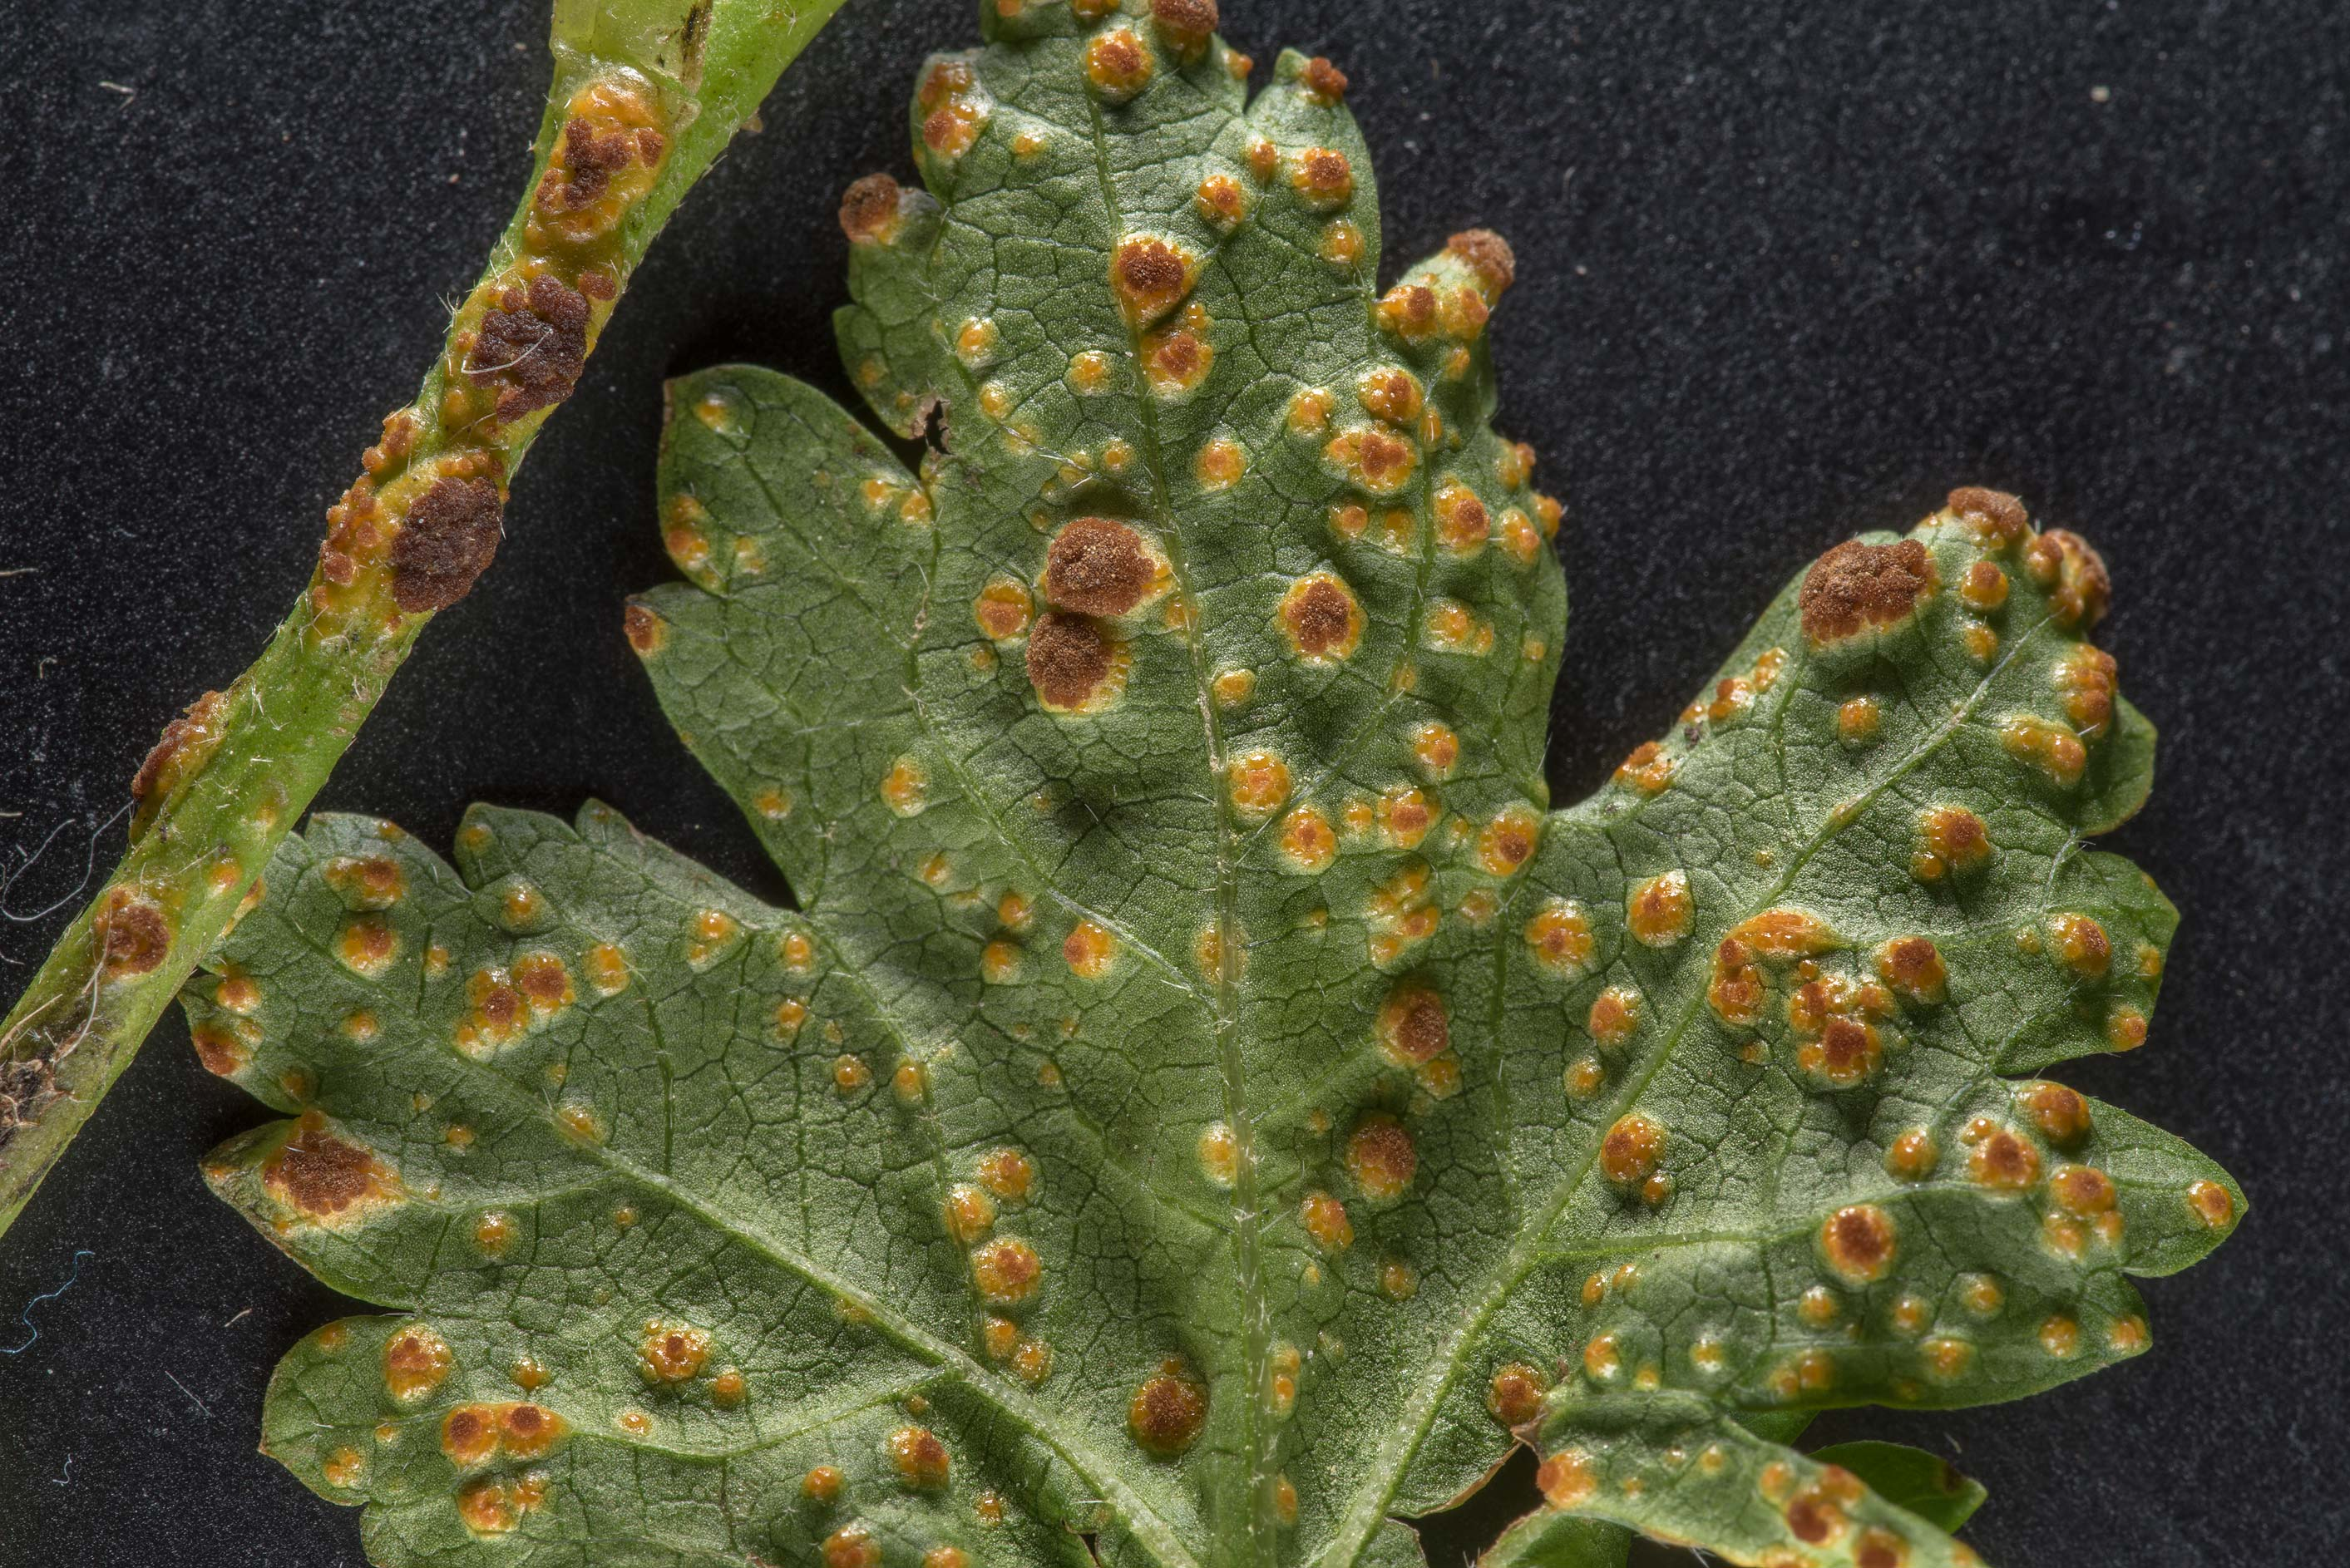 Blister-like pustules of hollyhock or mallow rust...Bush Dr.. College Station, Texas